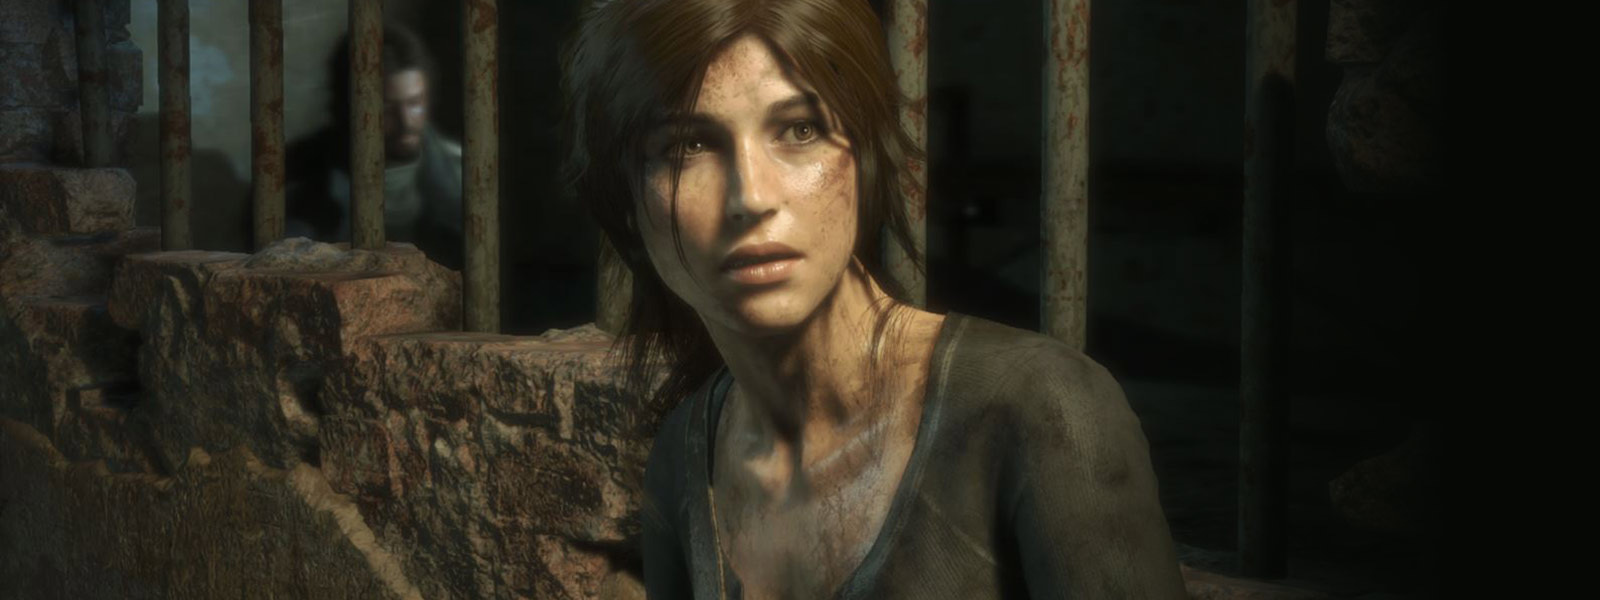 front view of Lara with prison bars behind her